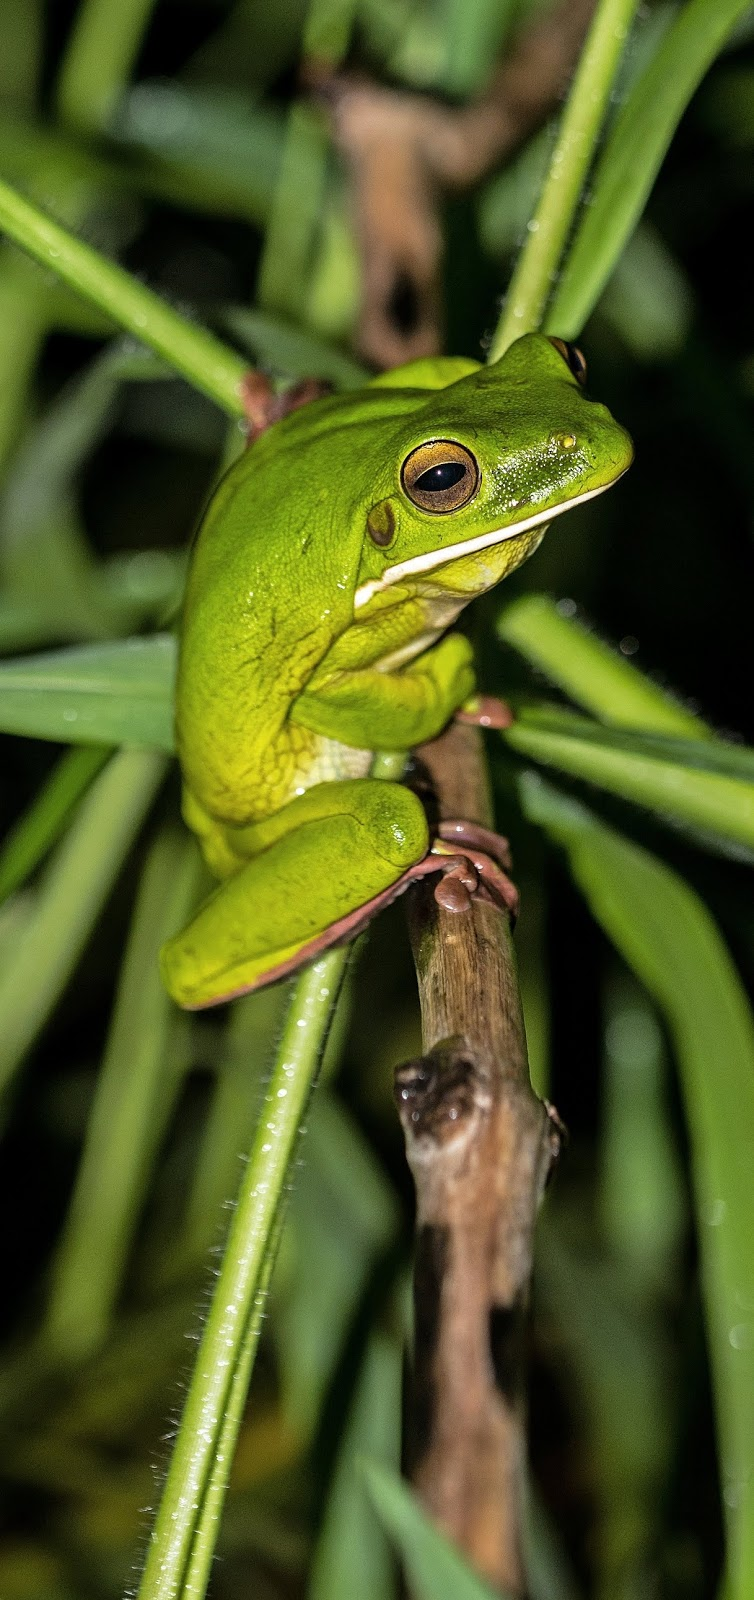 A white-lipped tree frog.